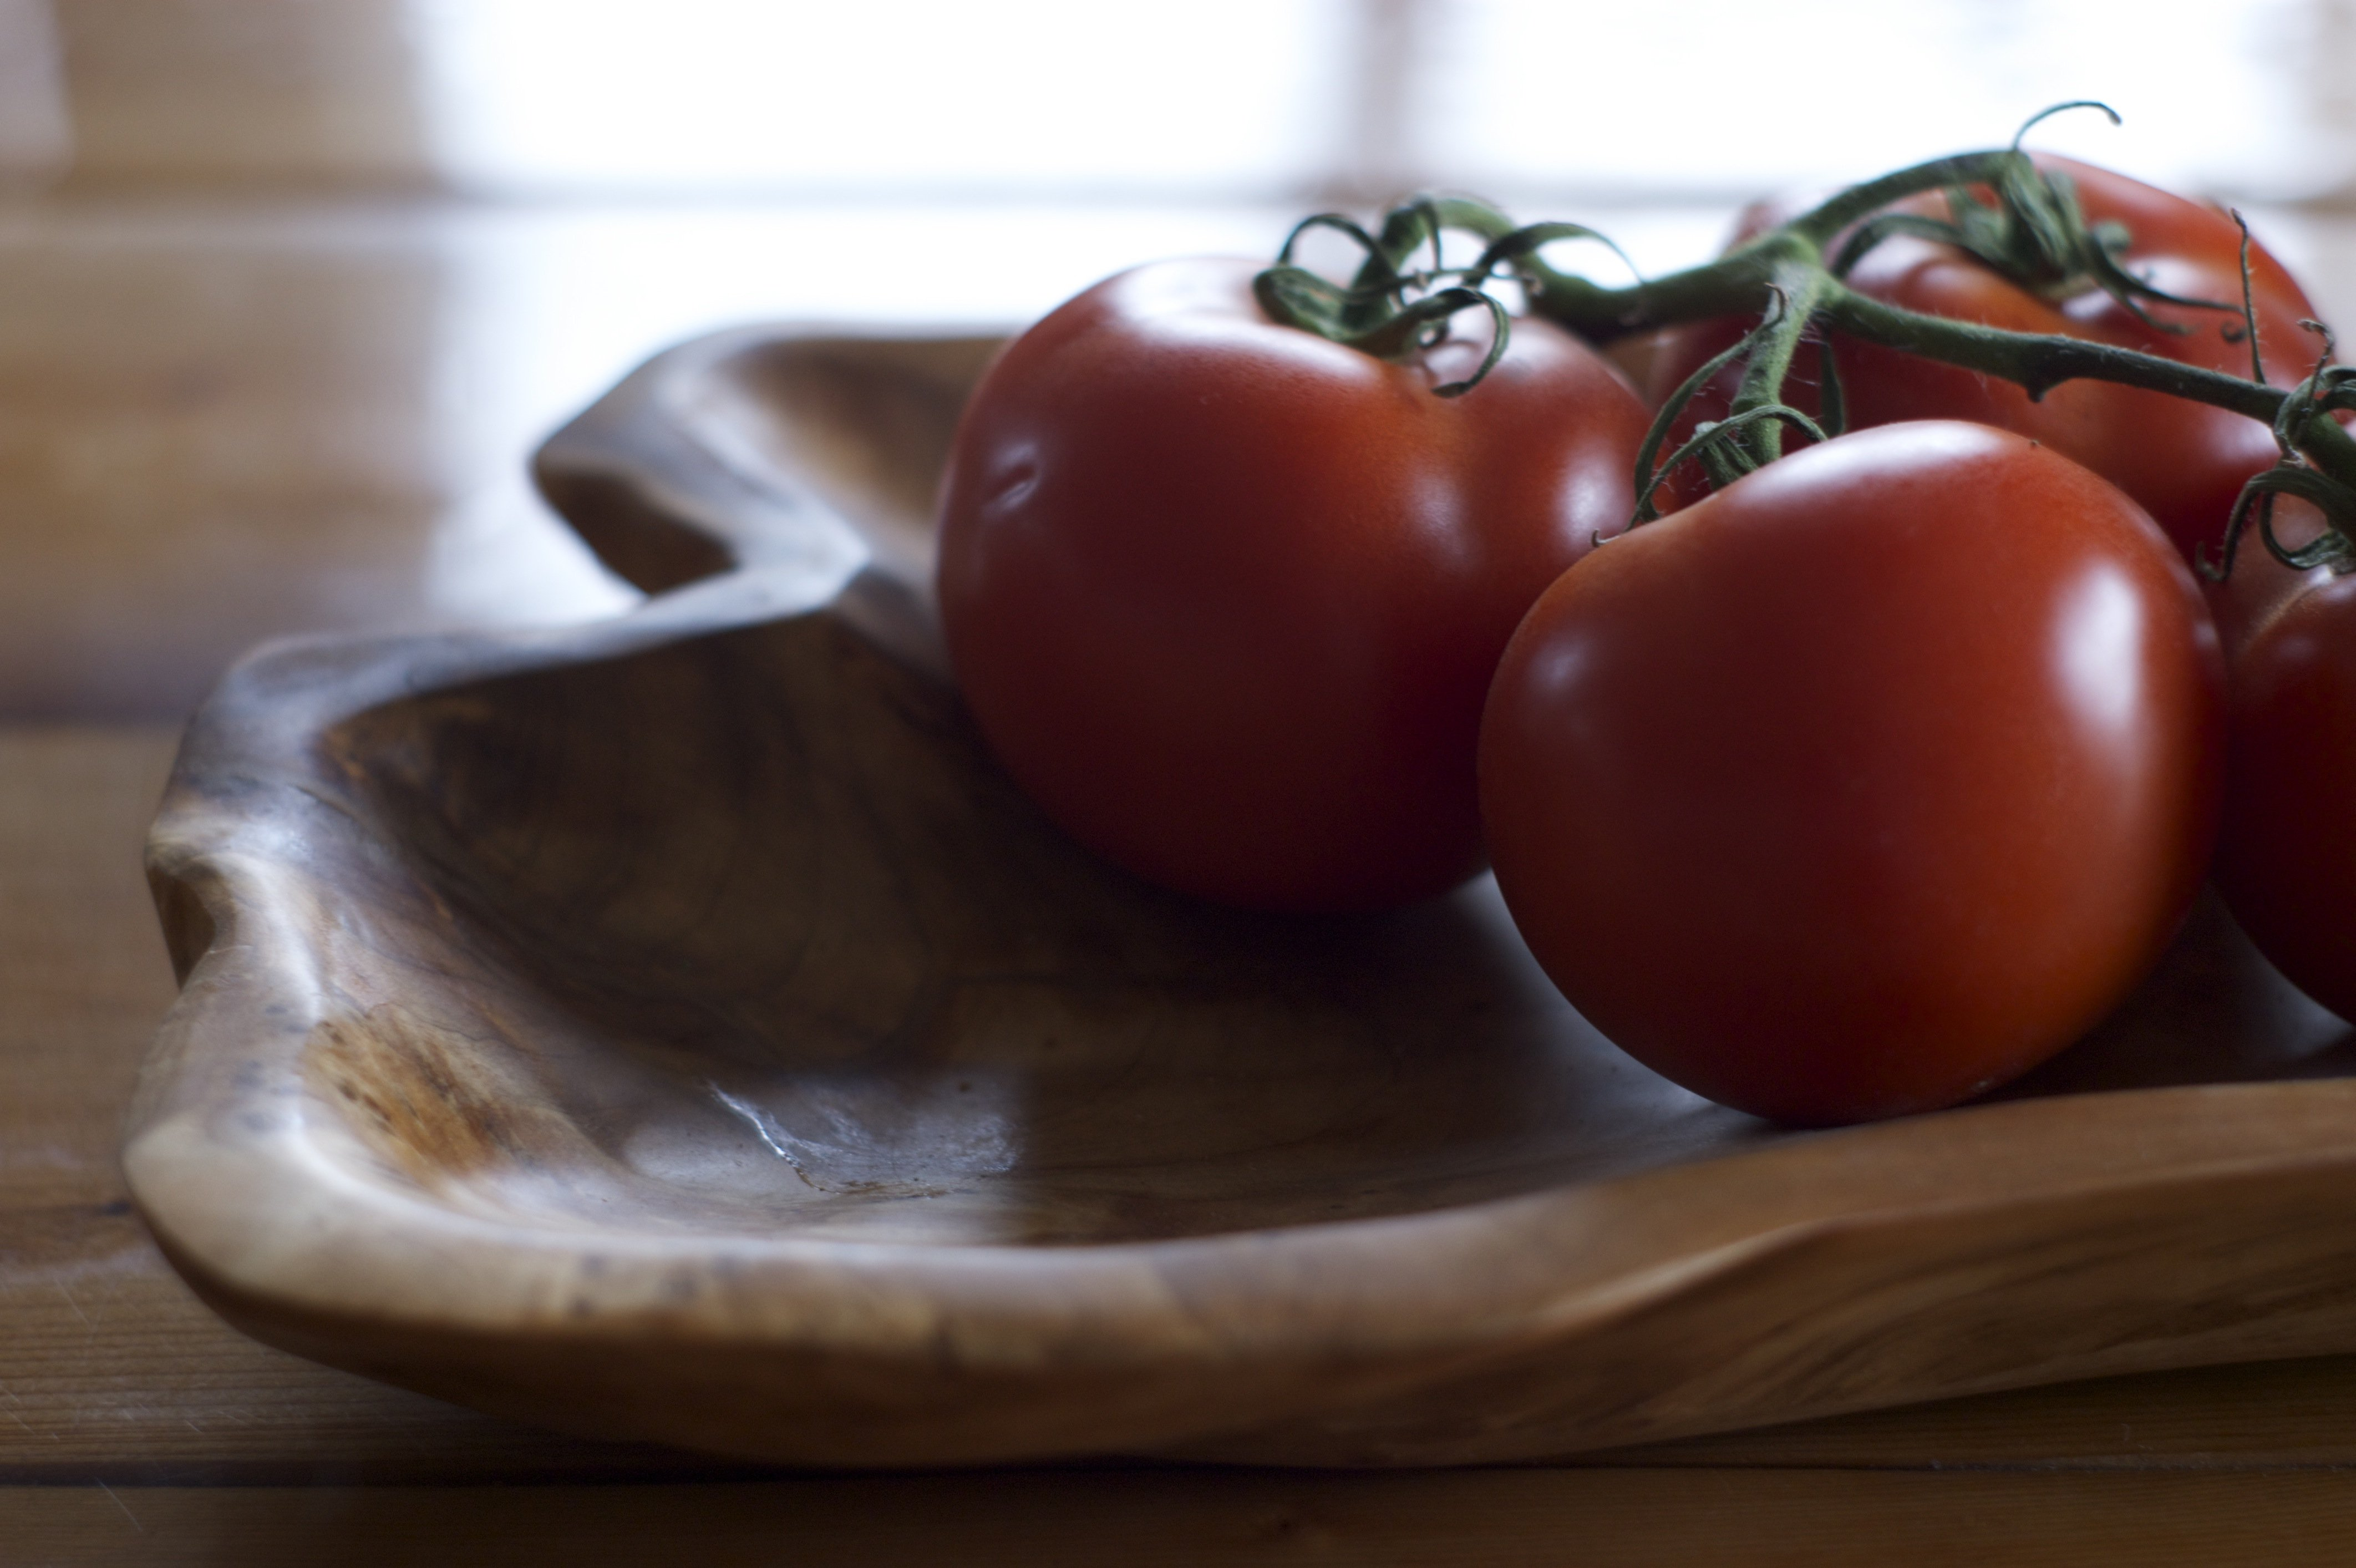 tomatoes in a bowl #2